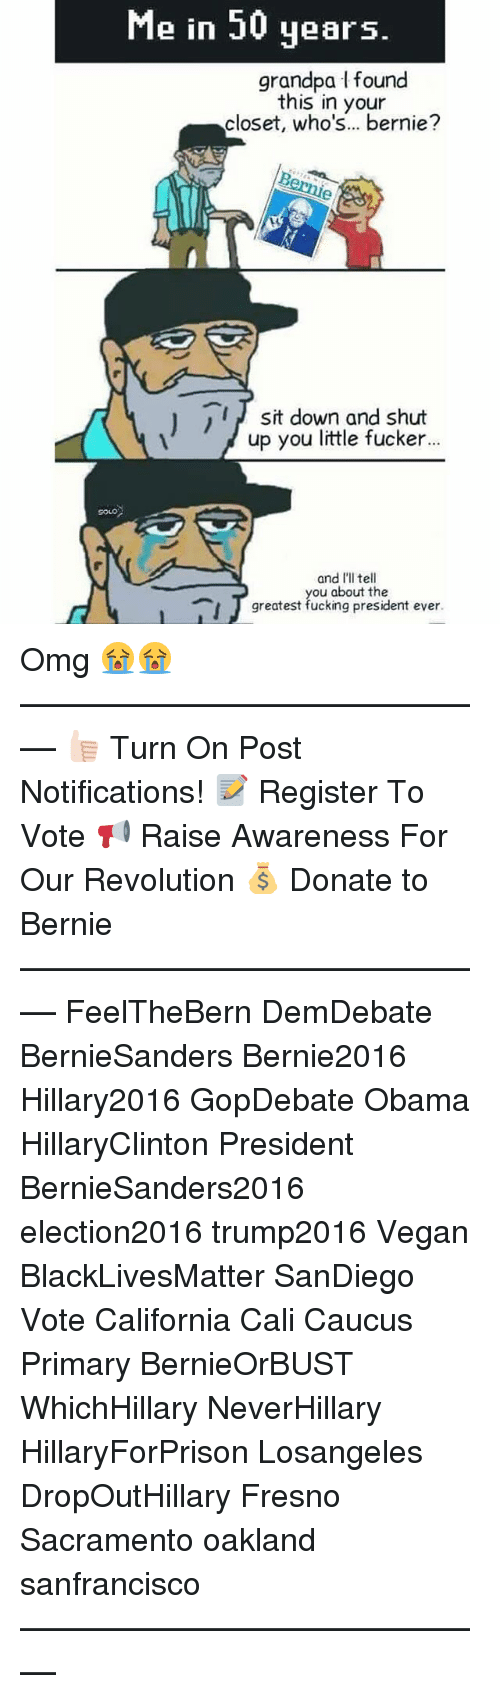 caucuses: Me in 50 years.  grandpa l found  this in your  closet, who's... bernie?  sit down and shut  up you little fucker...  and I'll tell  you about the  greatest fucking president ever. Omg 😭😭 ––––––––––––––––––––––––––– 👍🏻 Turn On Post Notifications! 📝 Register To Vote 📢 Raise Awareness For Our Revolution 💰 Donate to Bernie ––––––––––––––––––––––––––– FeelTheBern DemDebate BernieSanders Bernie2016 Hillary2016 GopDebate Obama HillaryClinton President BernieSanders2016 election2016 trump2016 Vegan BlackLivesMatter SanDiego Vote California Cali Caucus Primary BernieOrBUST WhichHillary NeverHillary HillaryForPrison Losangeles DropOutHillary Fresno Sacramento oakland sanfrancisco –––––––––––––––––––––––––––